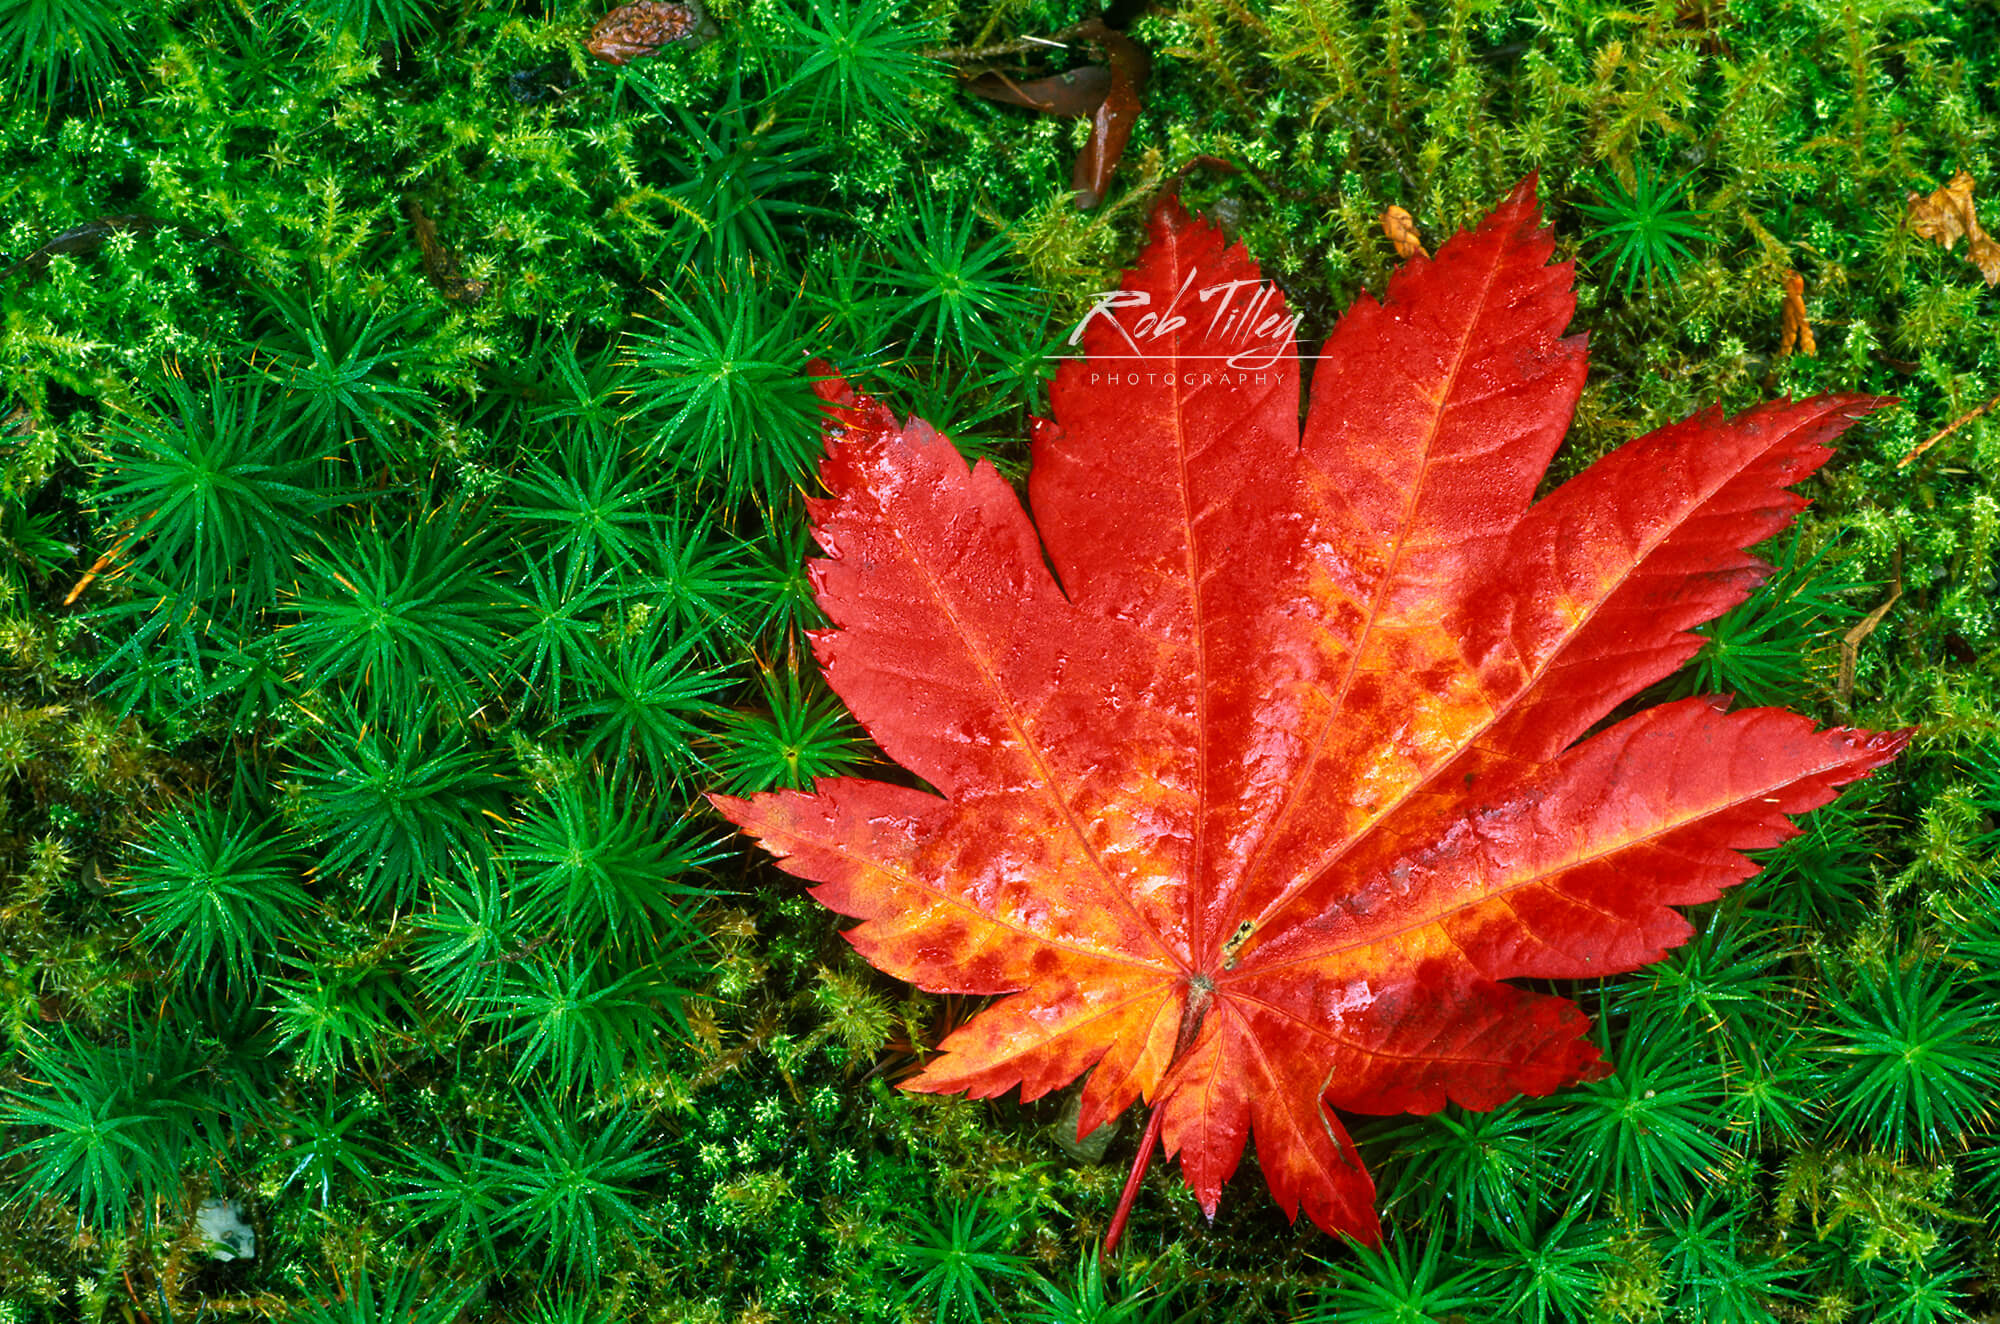 Japanese Maple Leaf on Moss.jpg